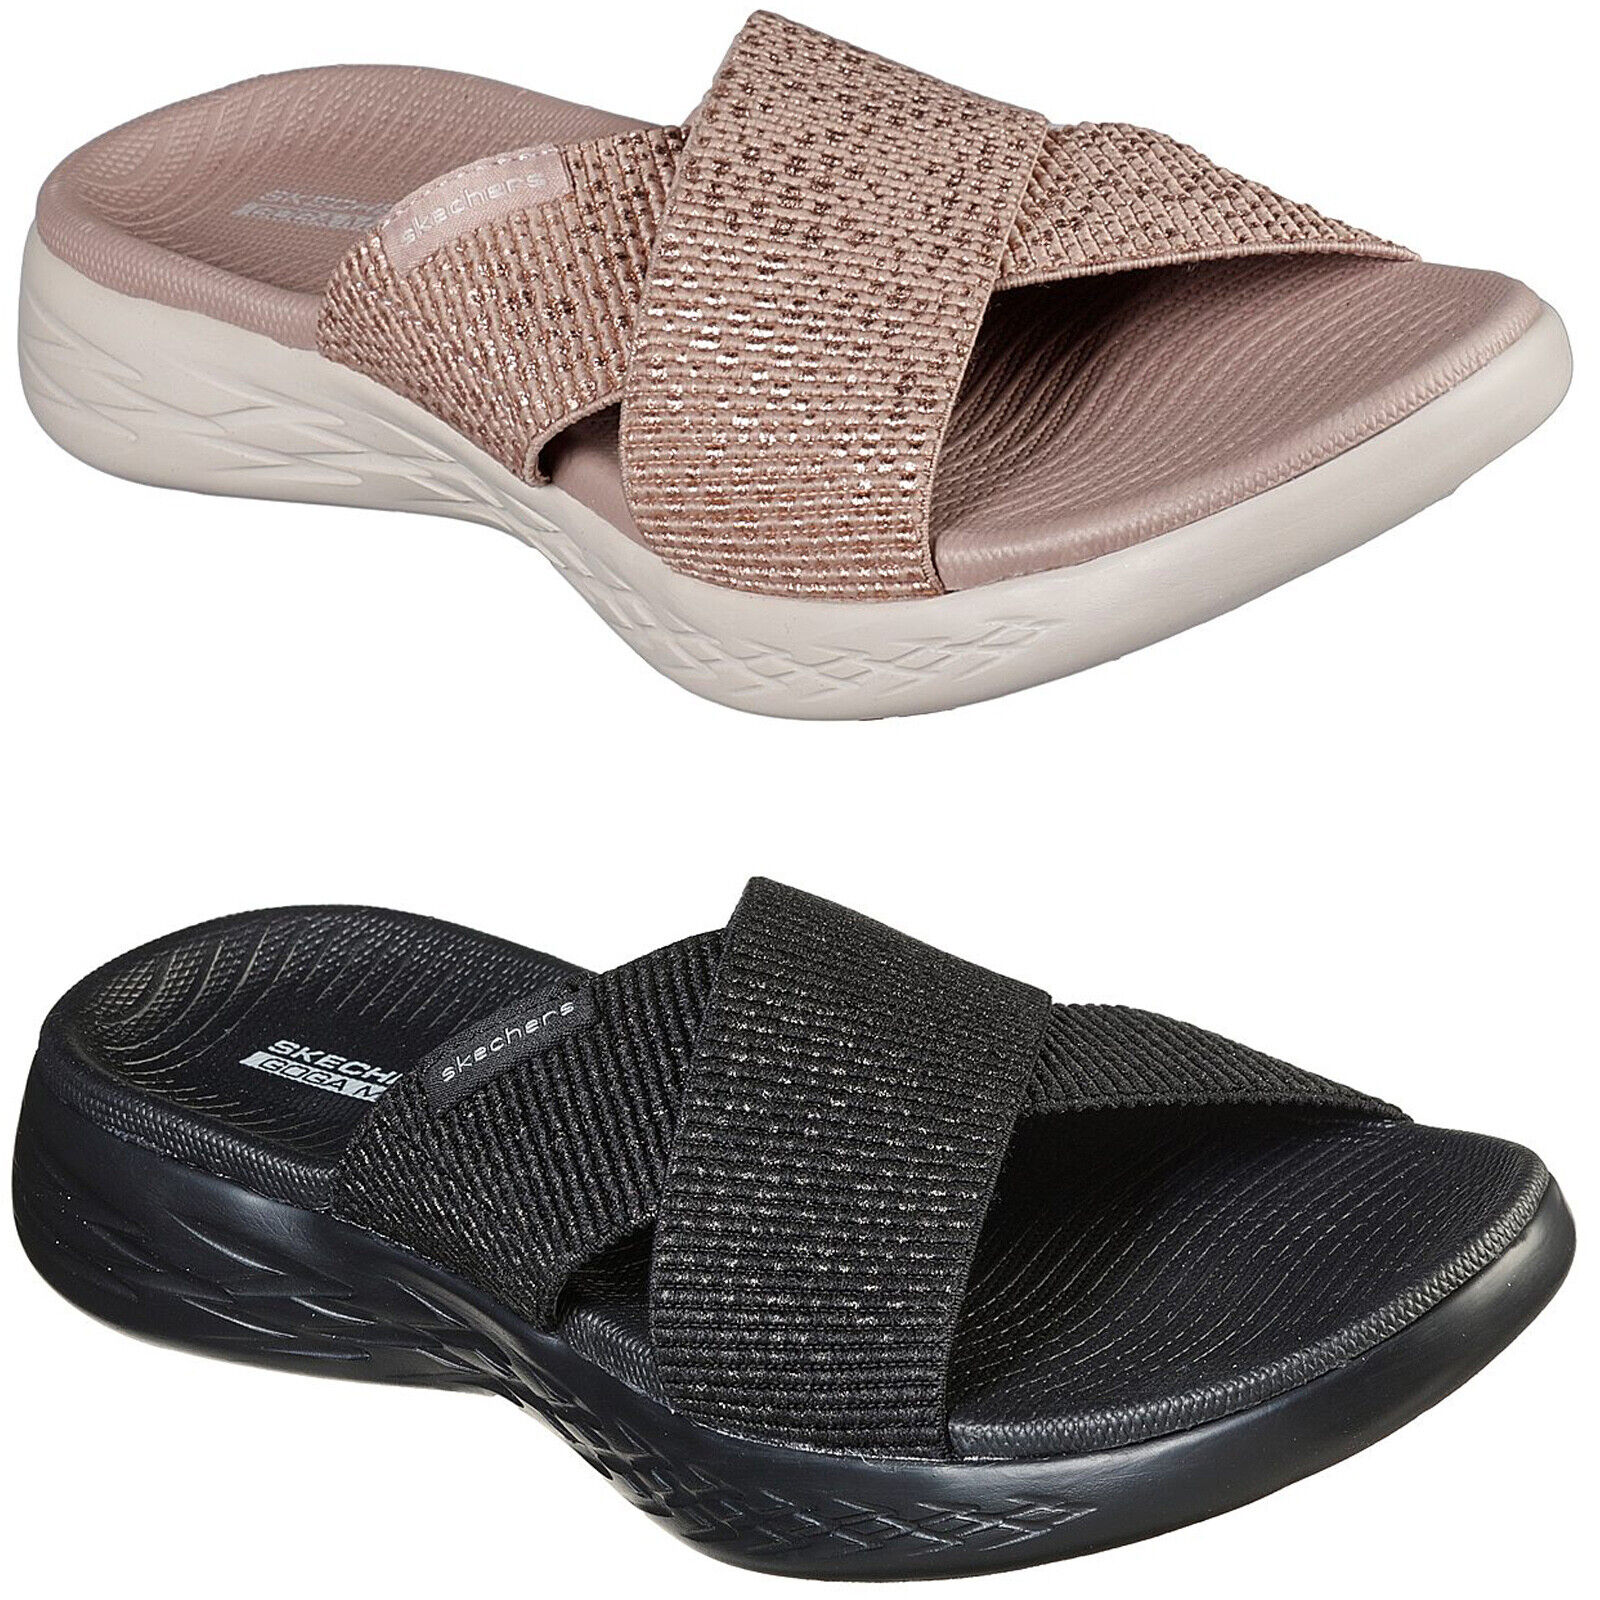 Skechers On The Go 400 Discovery Sandals With Goga Max 14670 Uk 5 Eur 38 Black For Sale Online Ebay